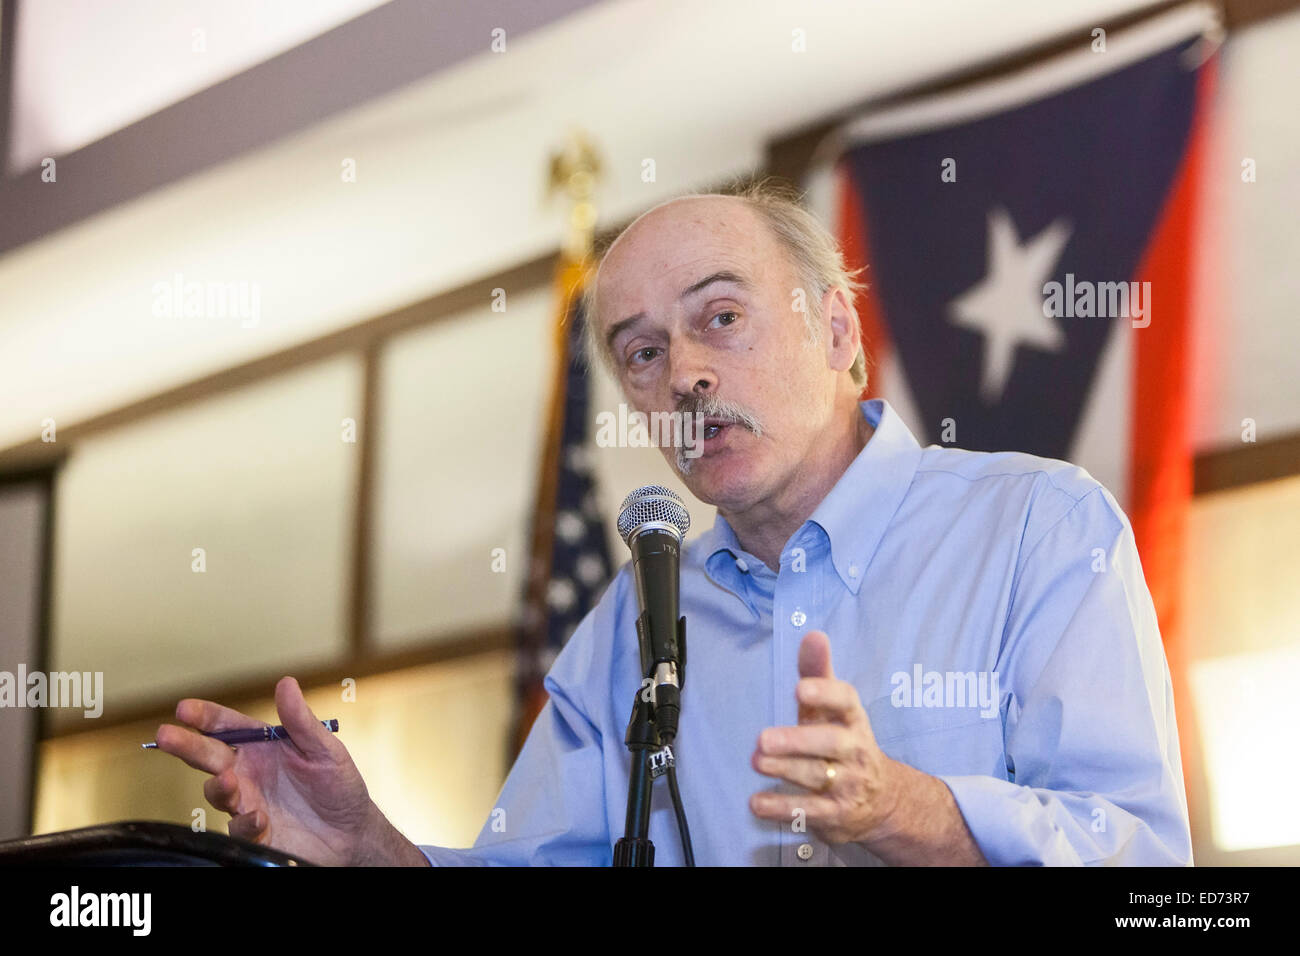 Cleveland, Ohio - Labor writer Steve Early speaks at the annual convention of Teamsters for a Democratic Union. - Stock Image